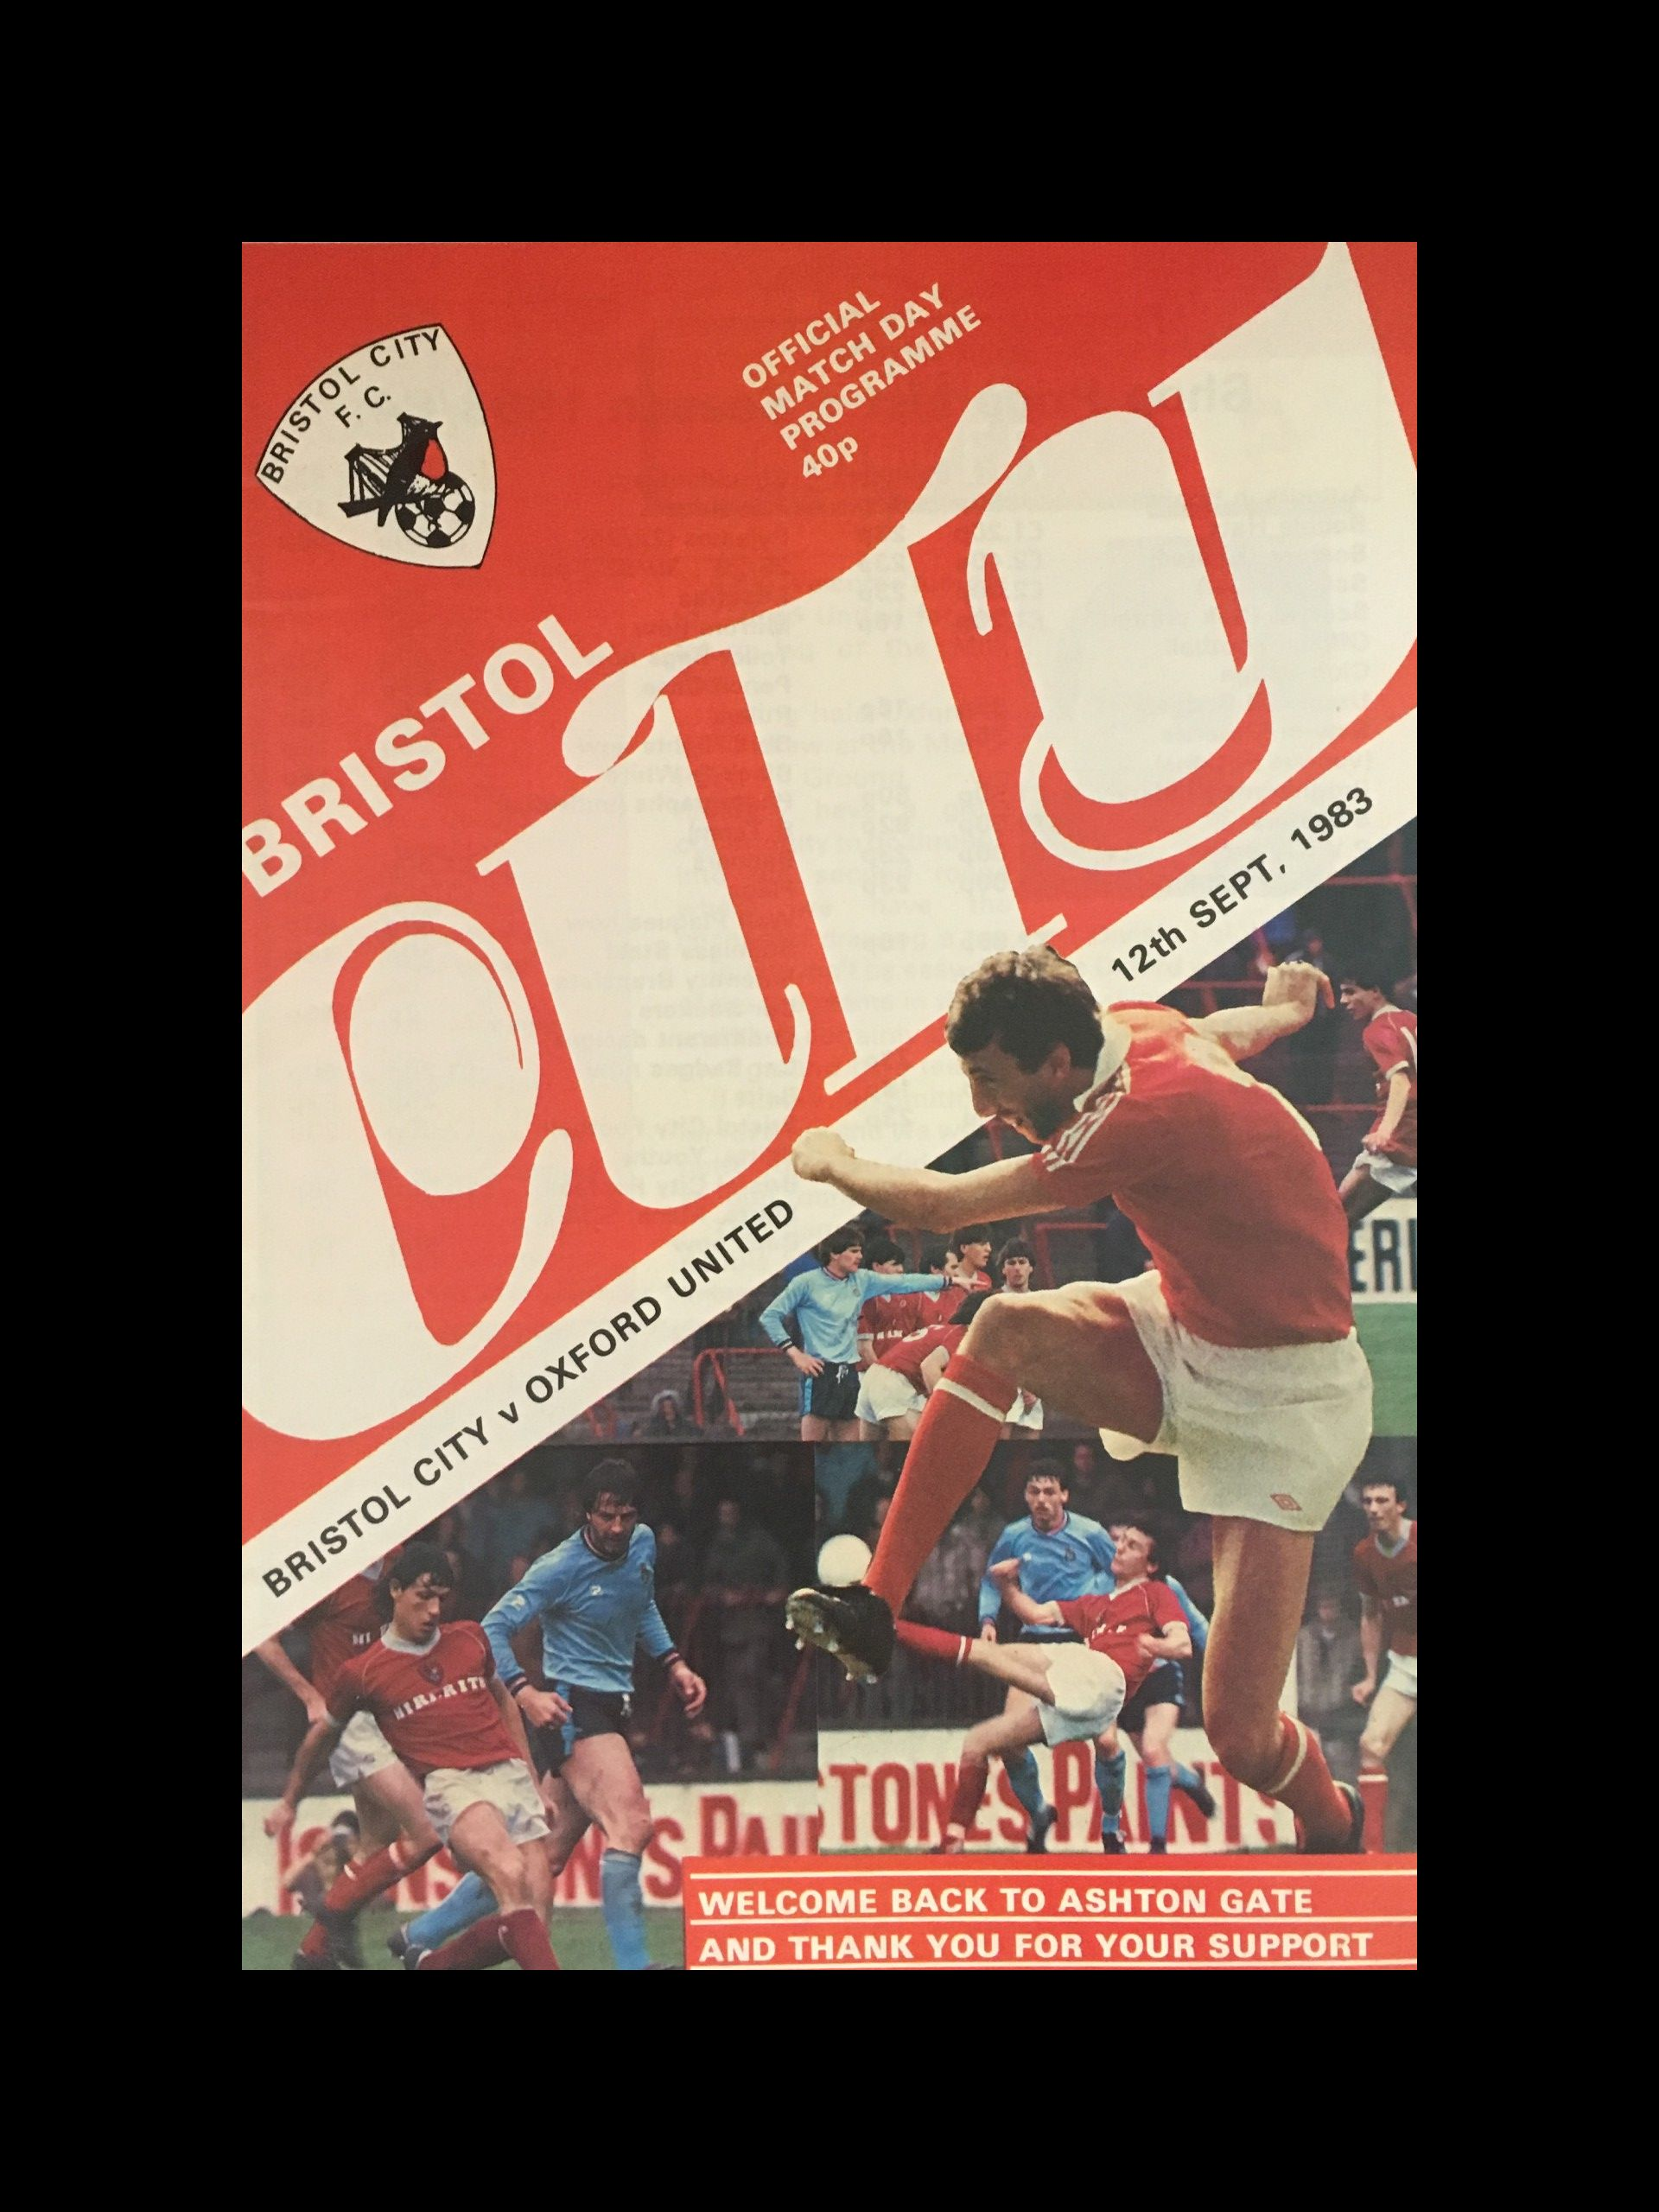 Bristol City v Oxford United 12-09-83 Programme